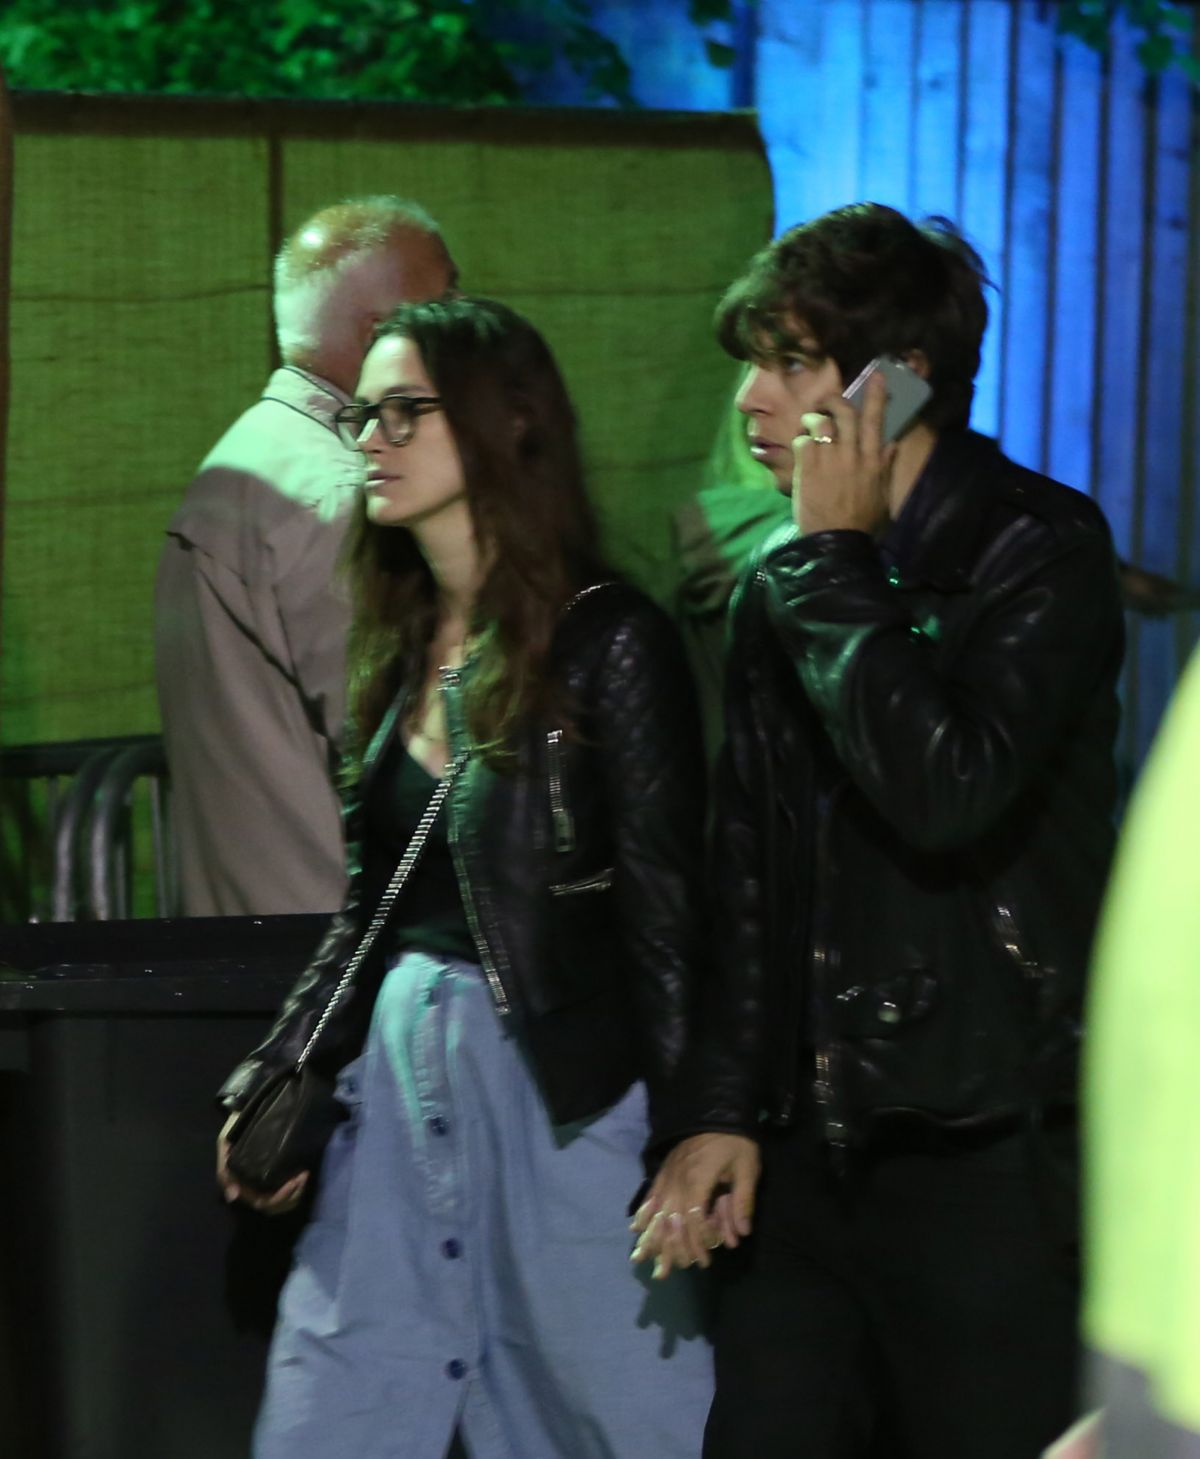 KEIRA KNIGHTLEY and James Righton at The Blur Concert at Hyde Park in London